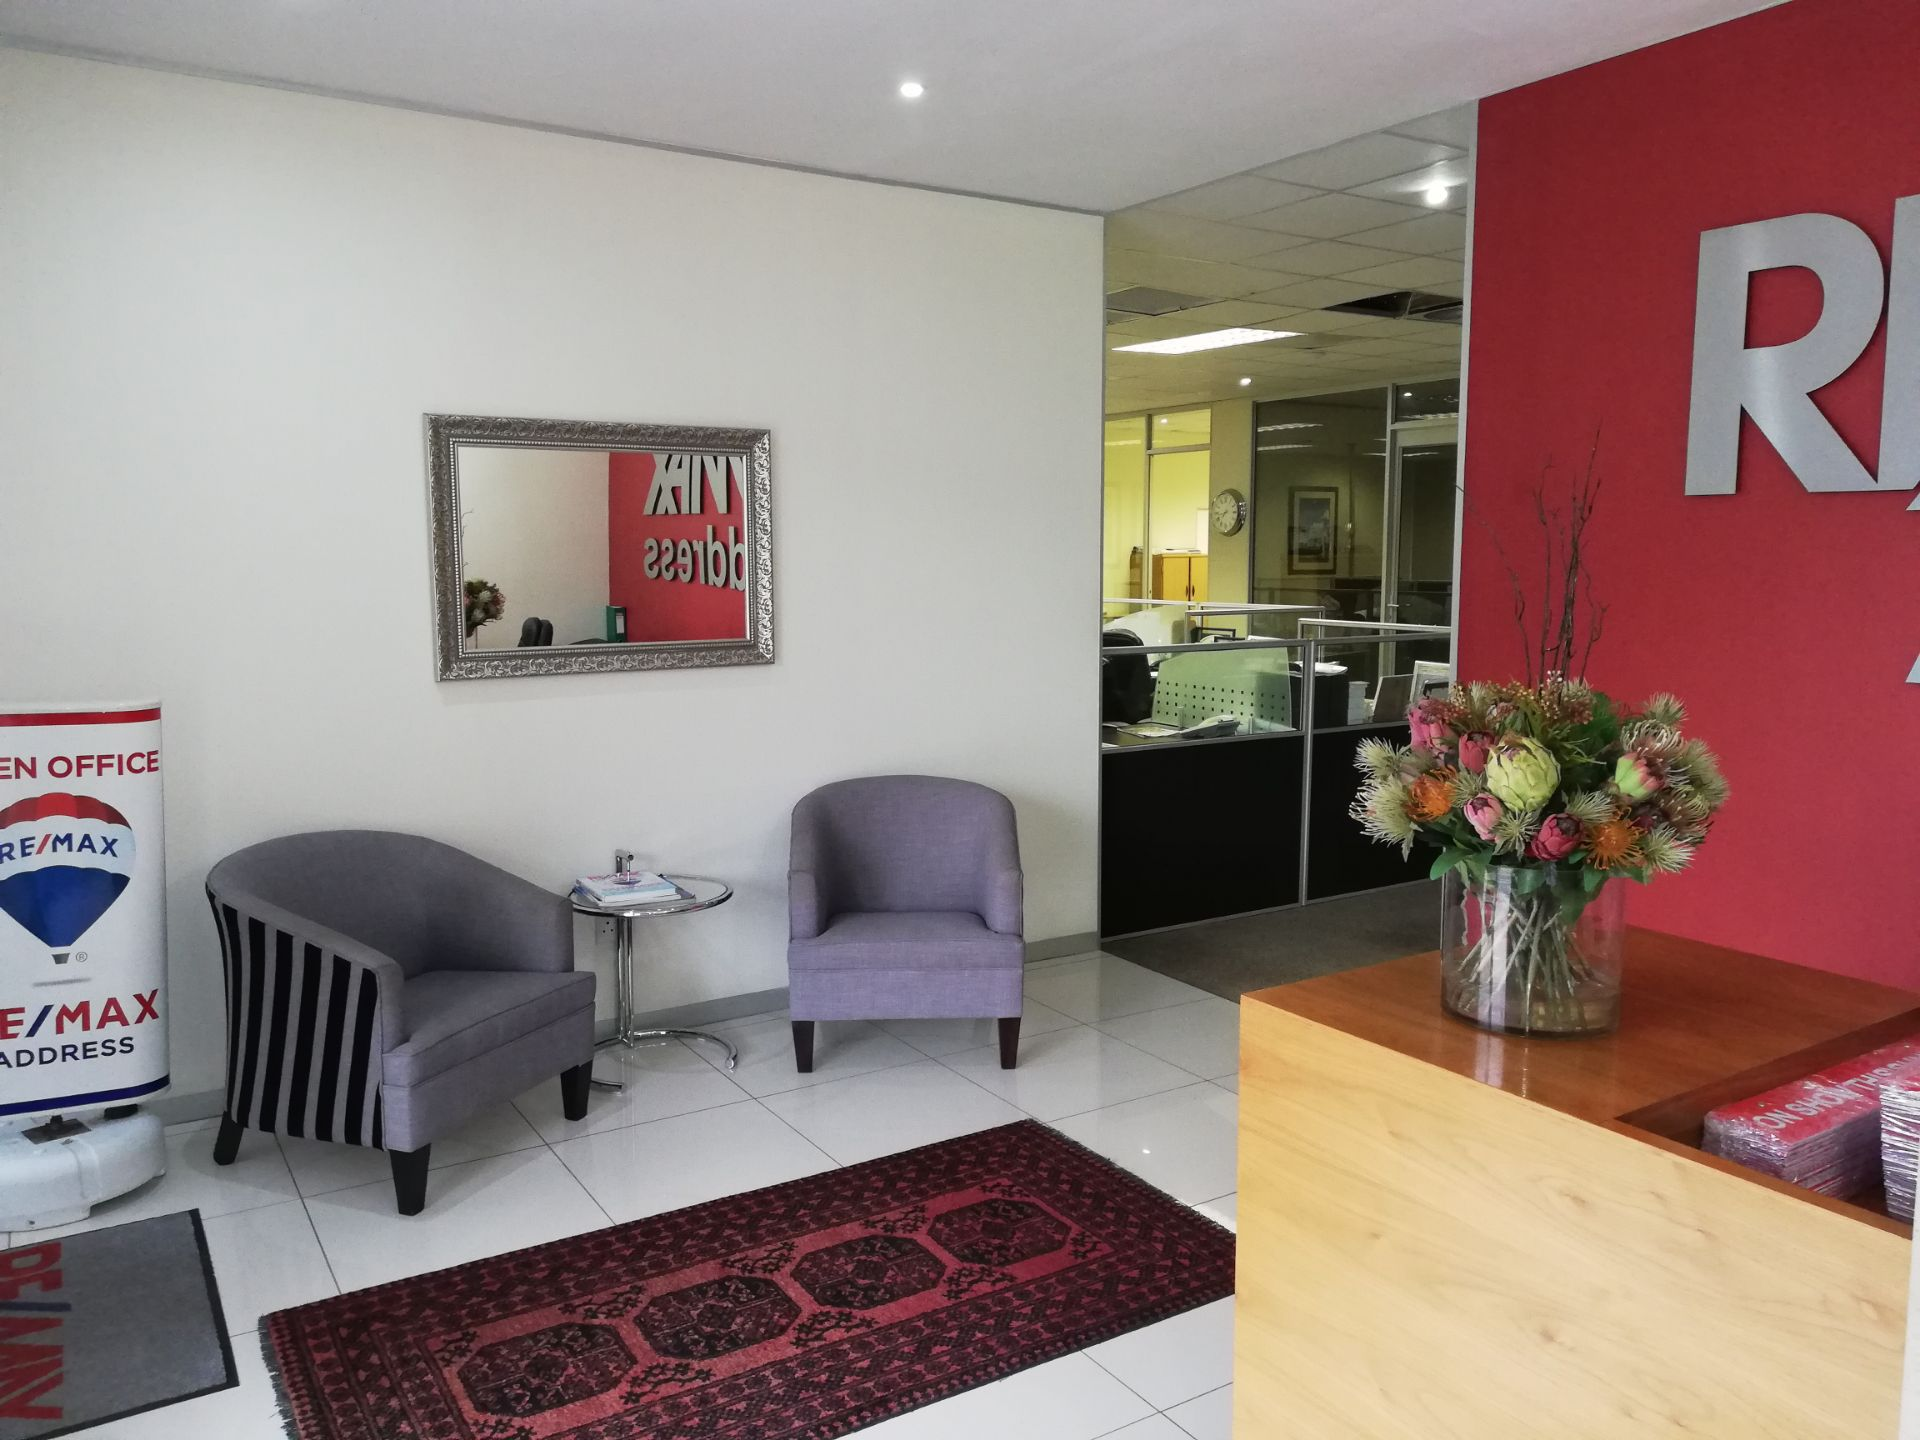 Investment / Residential investment in Umhlanga Rocks